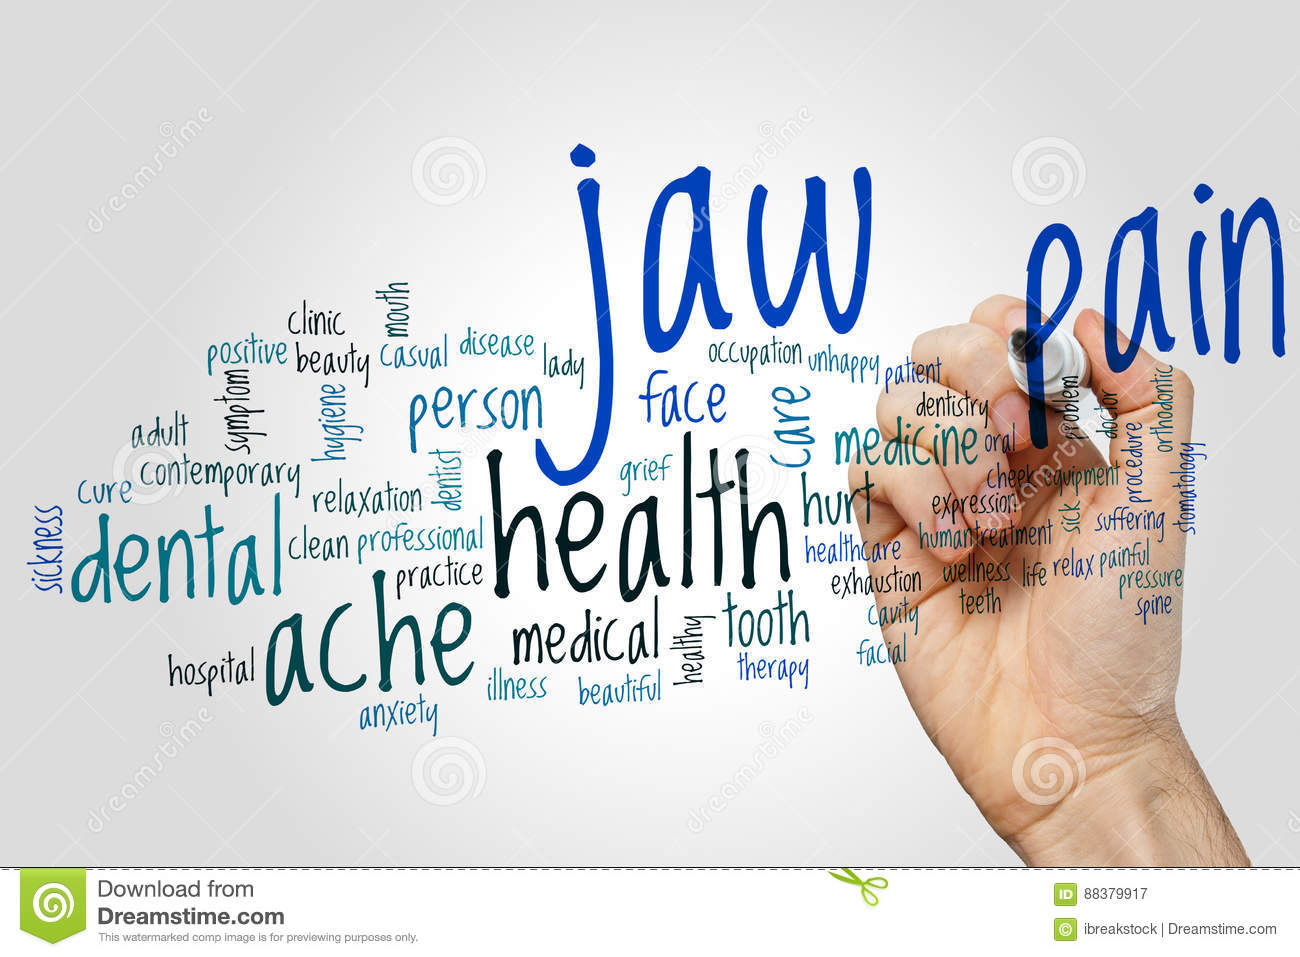 Jaw pain word cloud